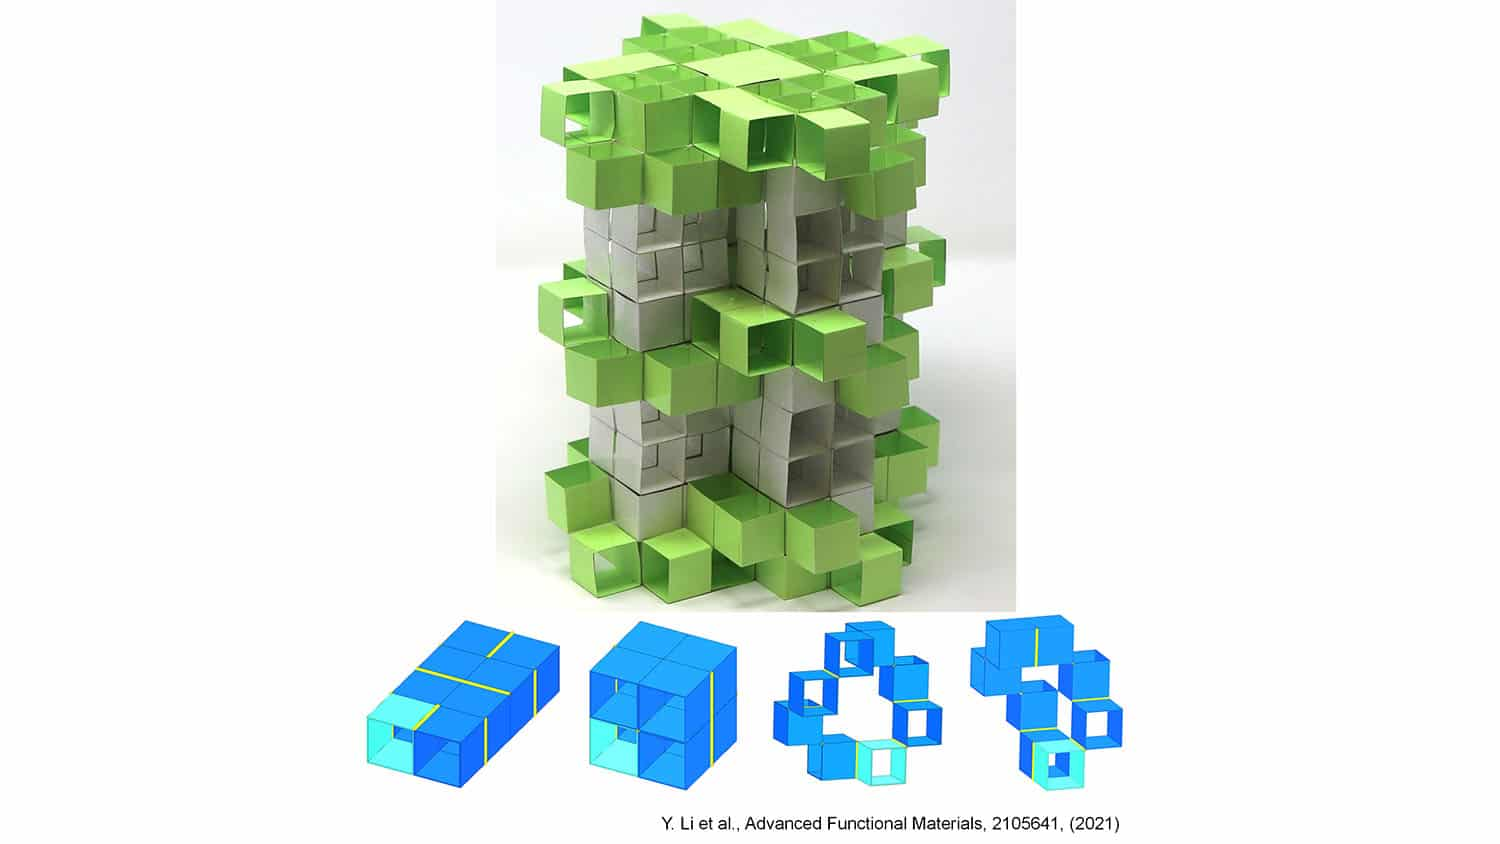 various shapes of metamaterial building blocks lie in front of a much larger structure made from similar blocks